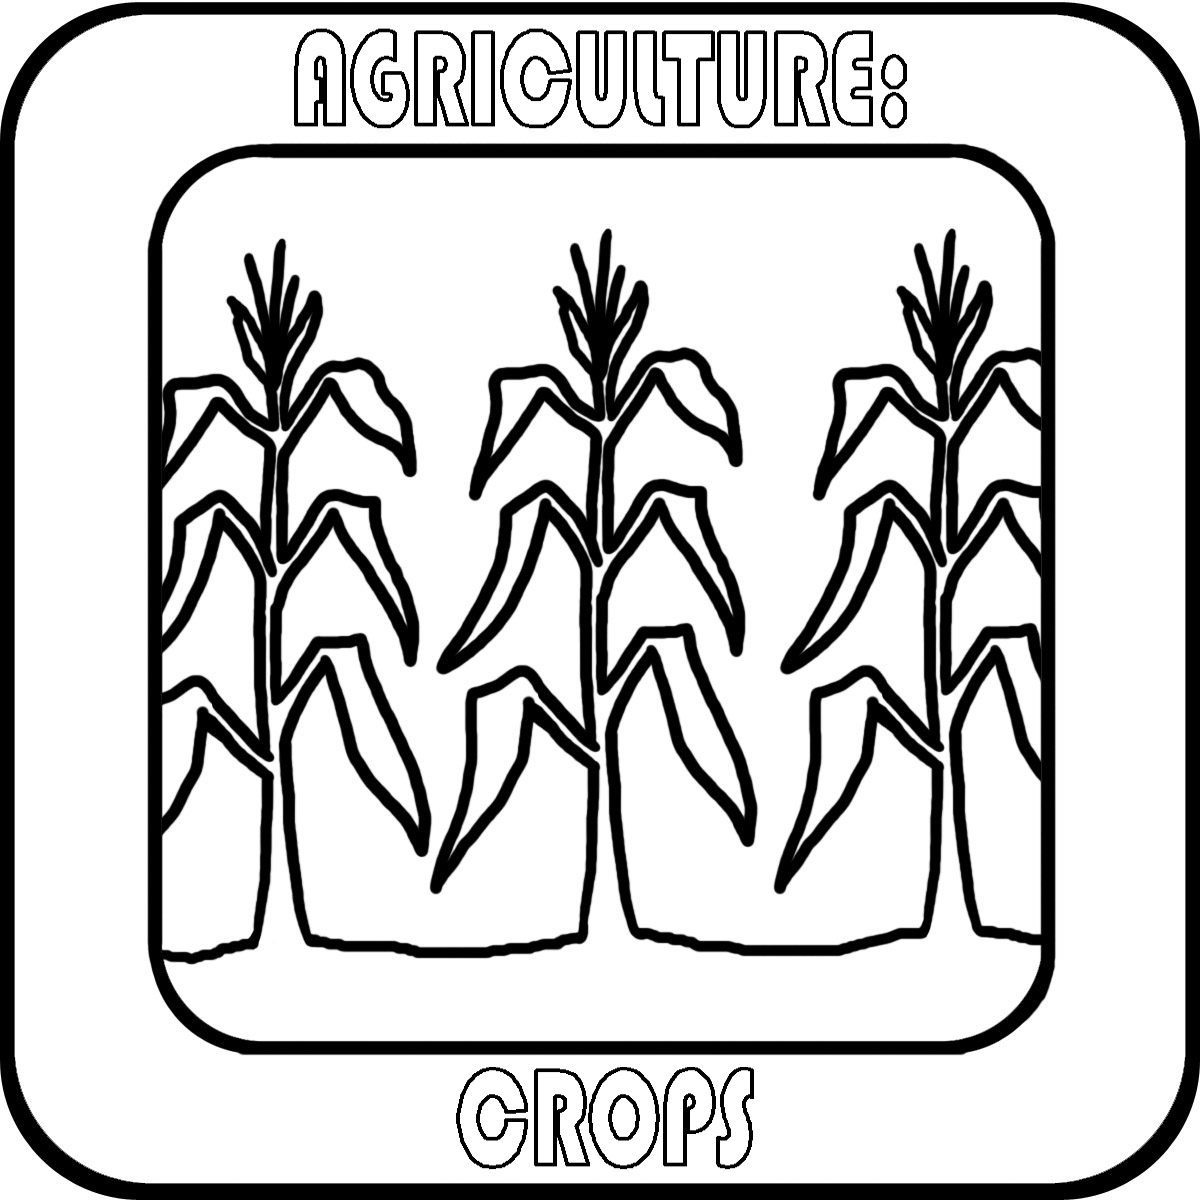 Crops clipart #4, Download drawings